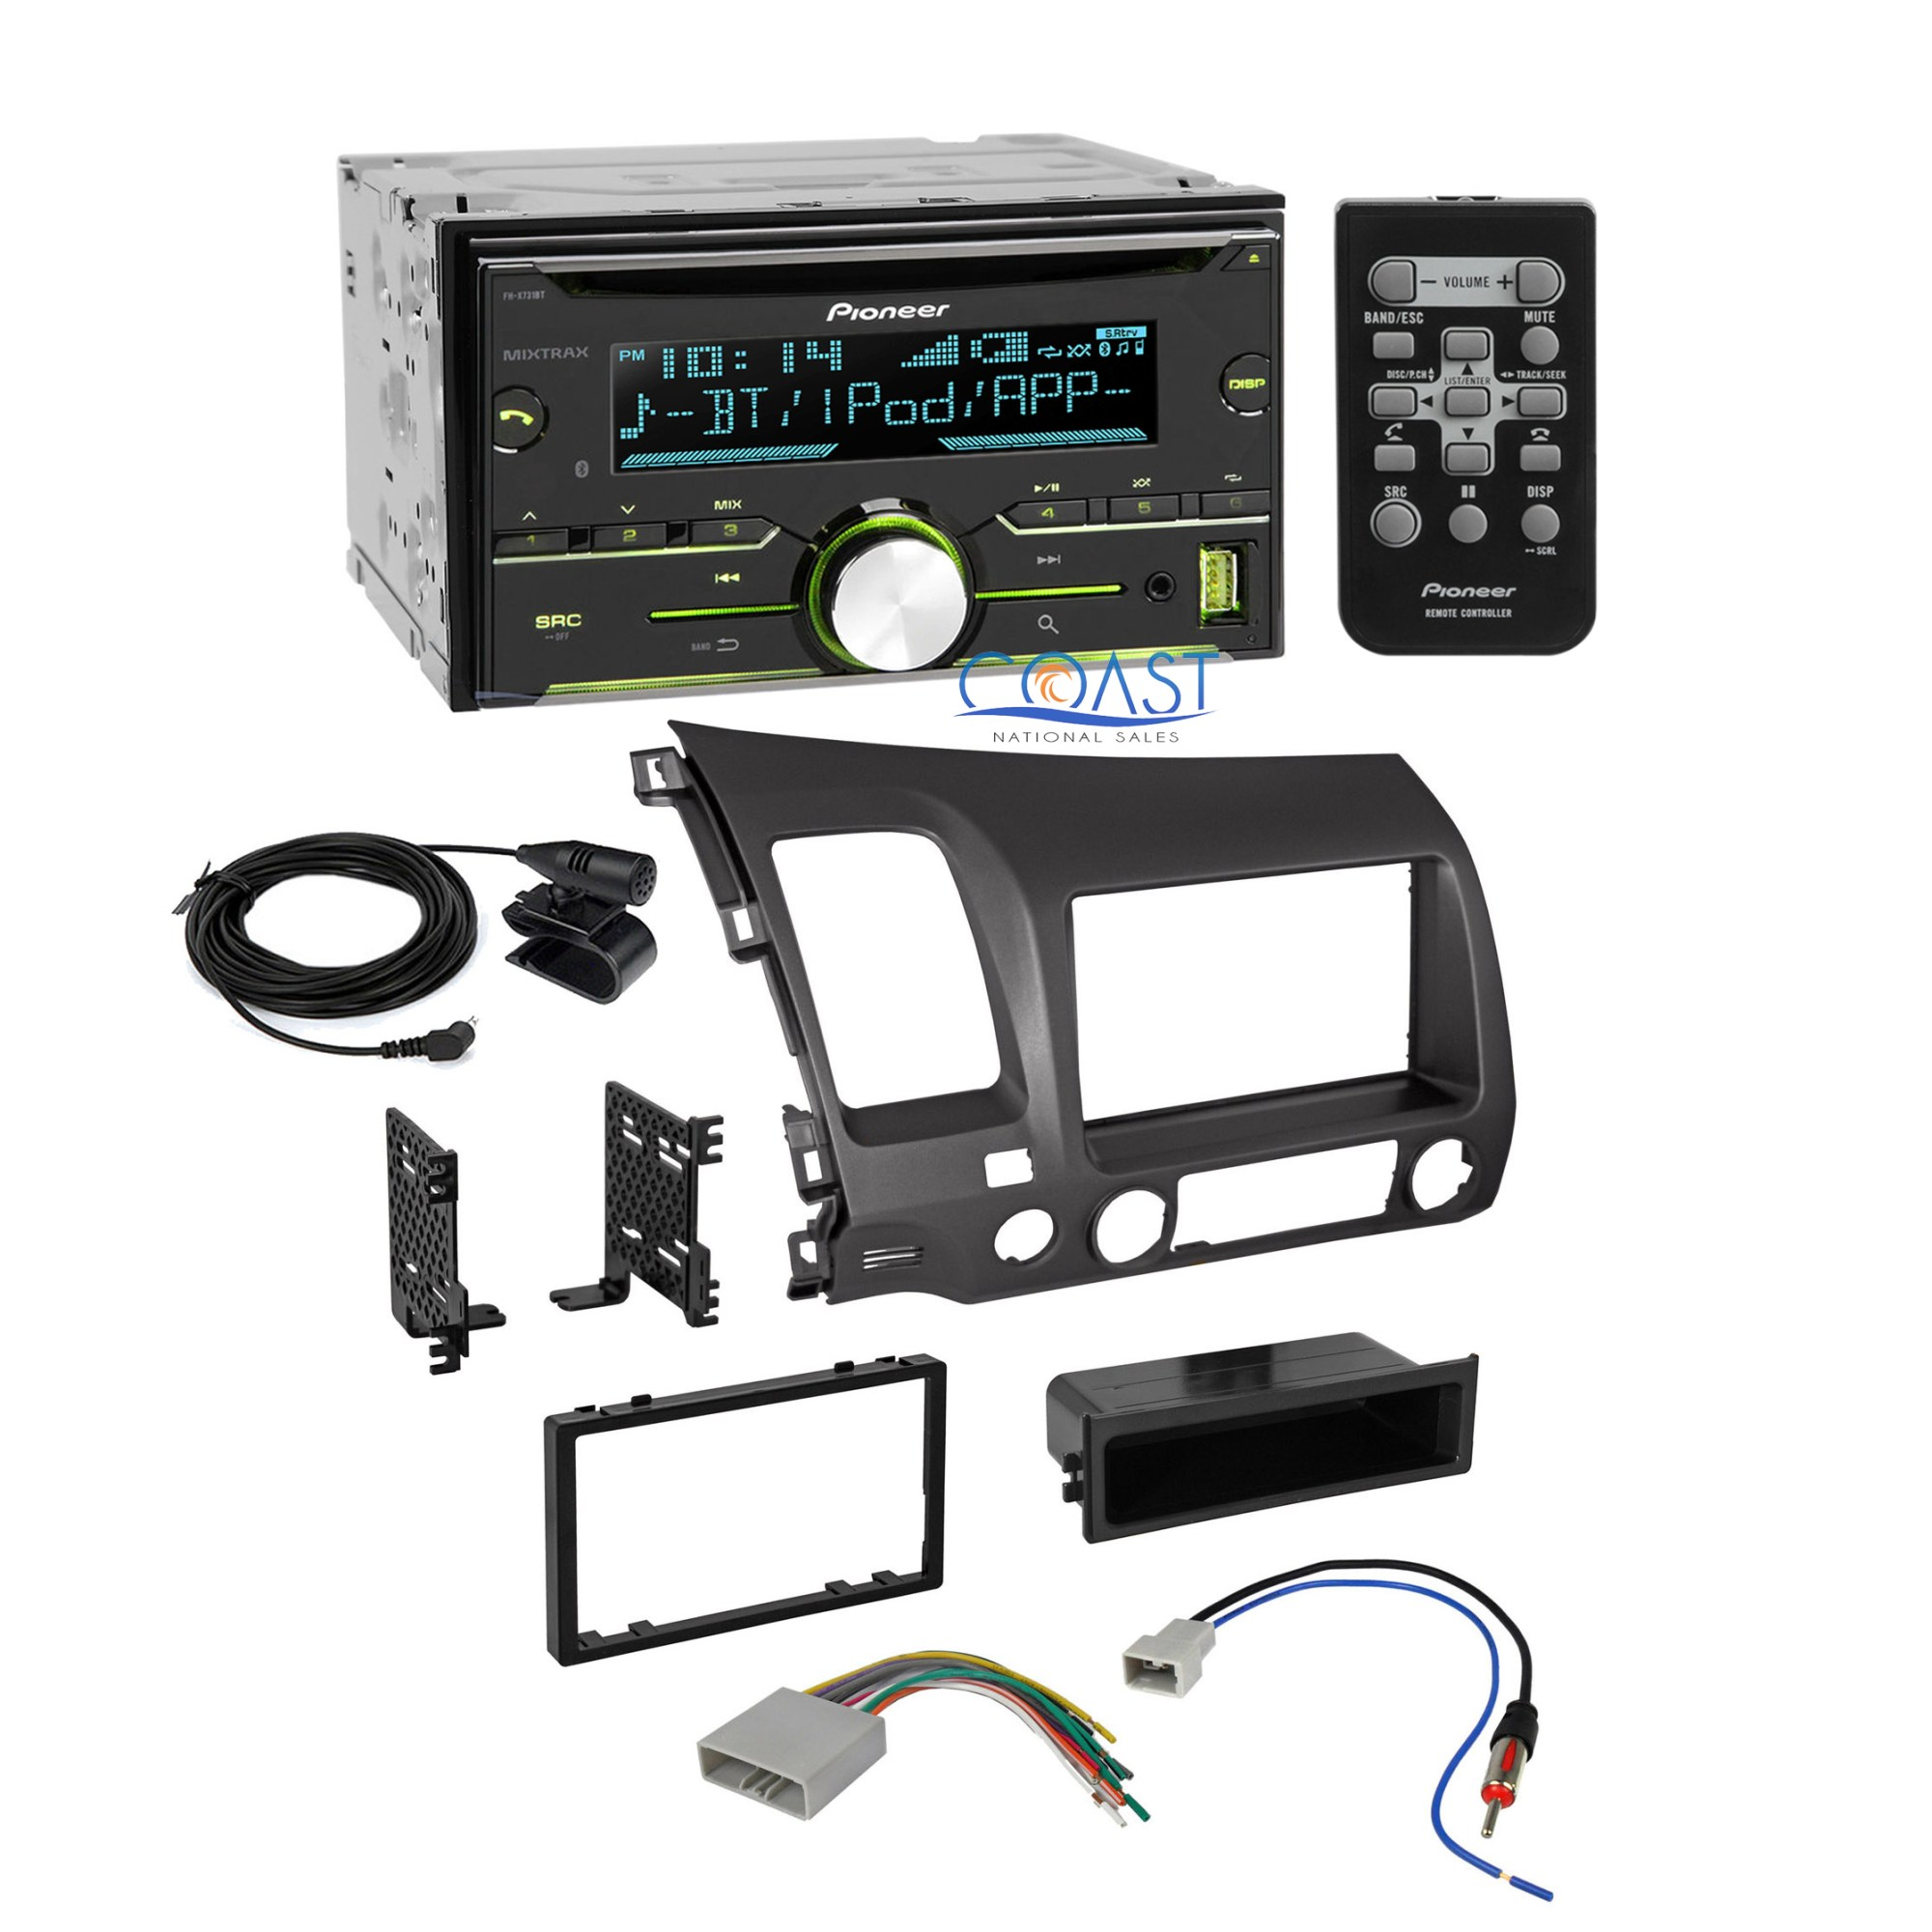 hight resolution of details about pioneer radio stereo dash kit wire harness antenna for 2006 2011 honda civic